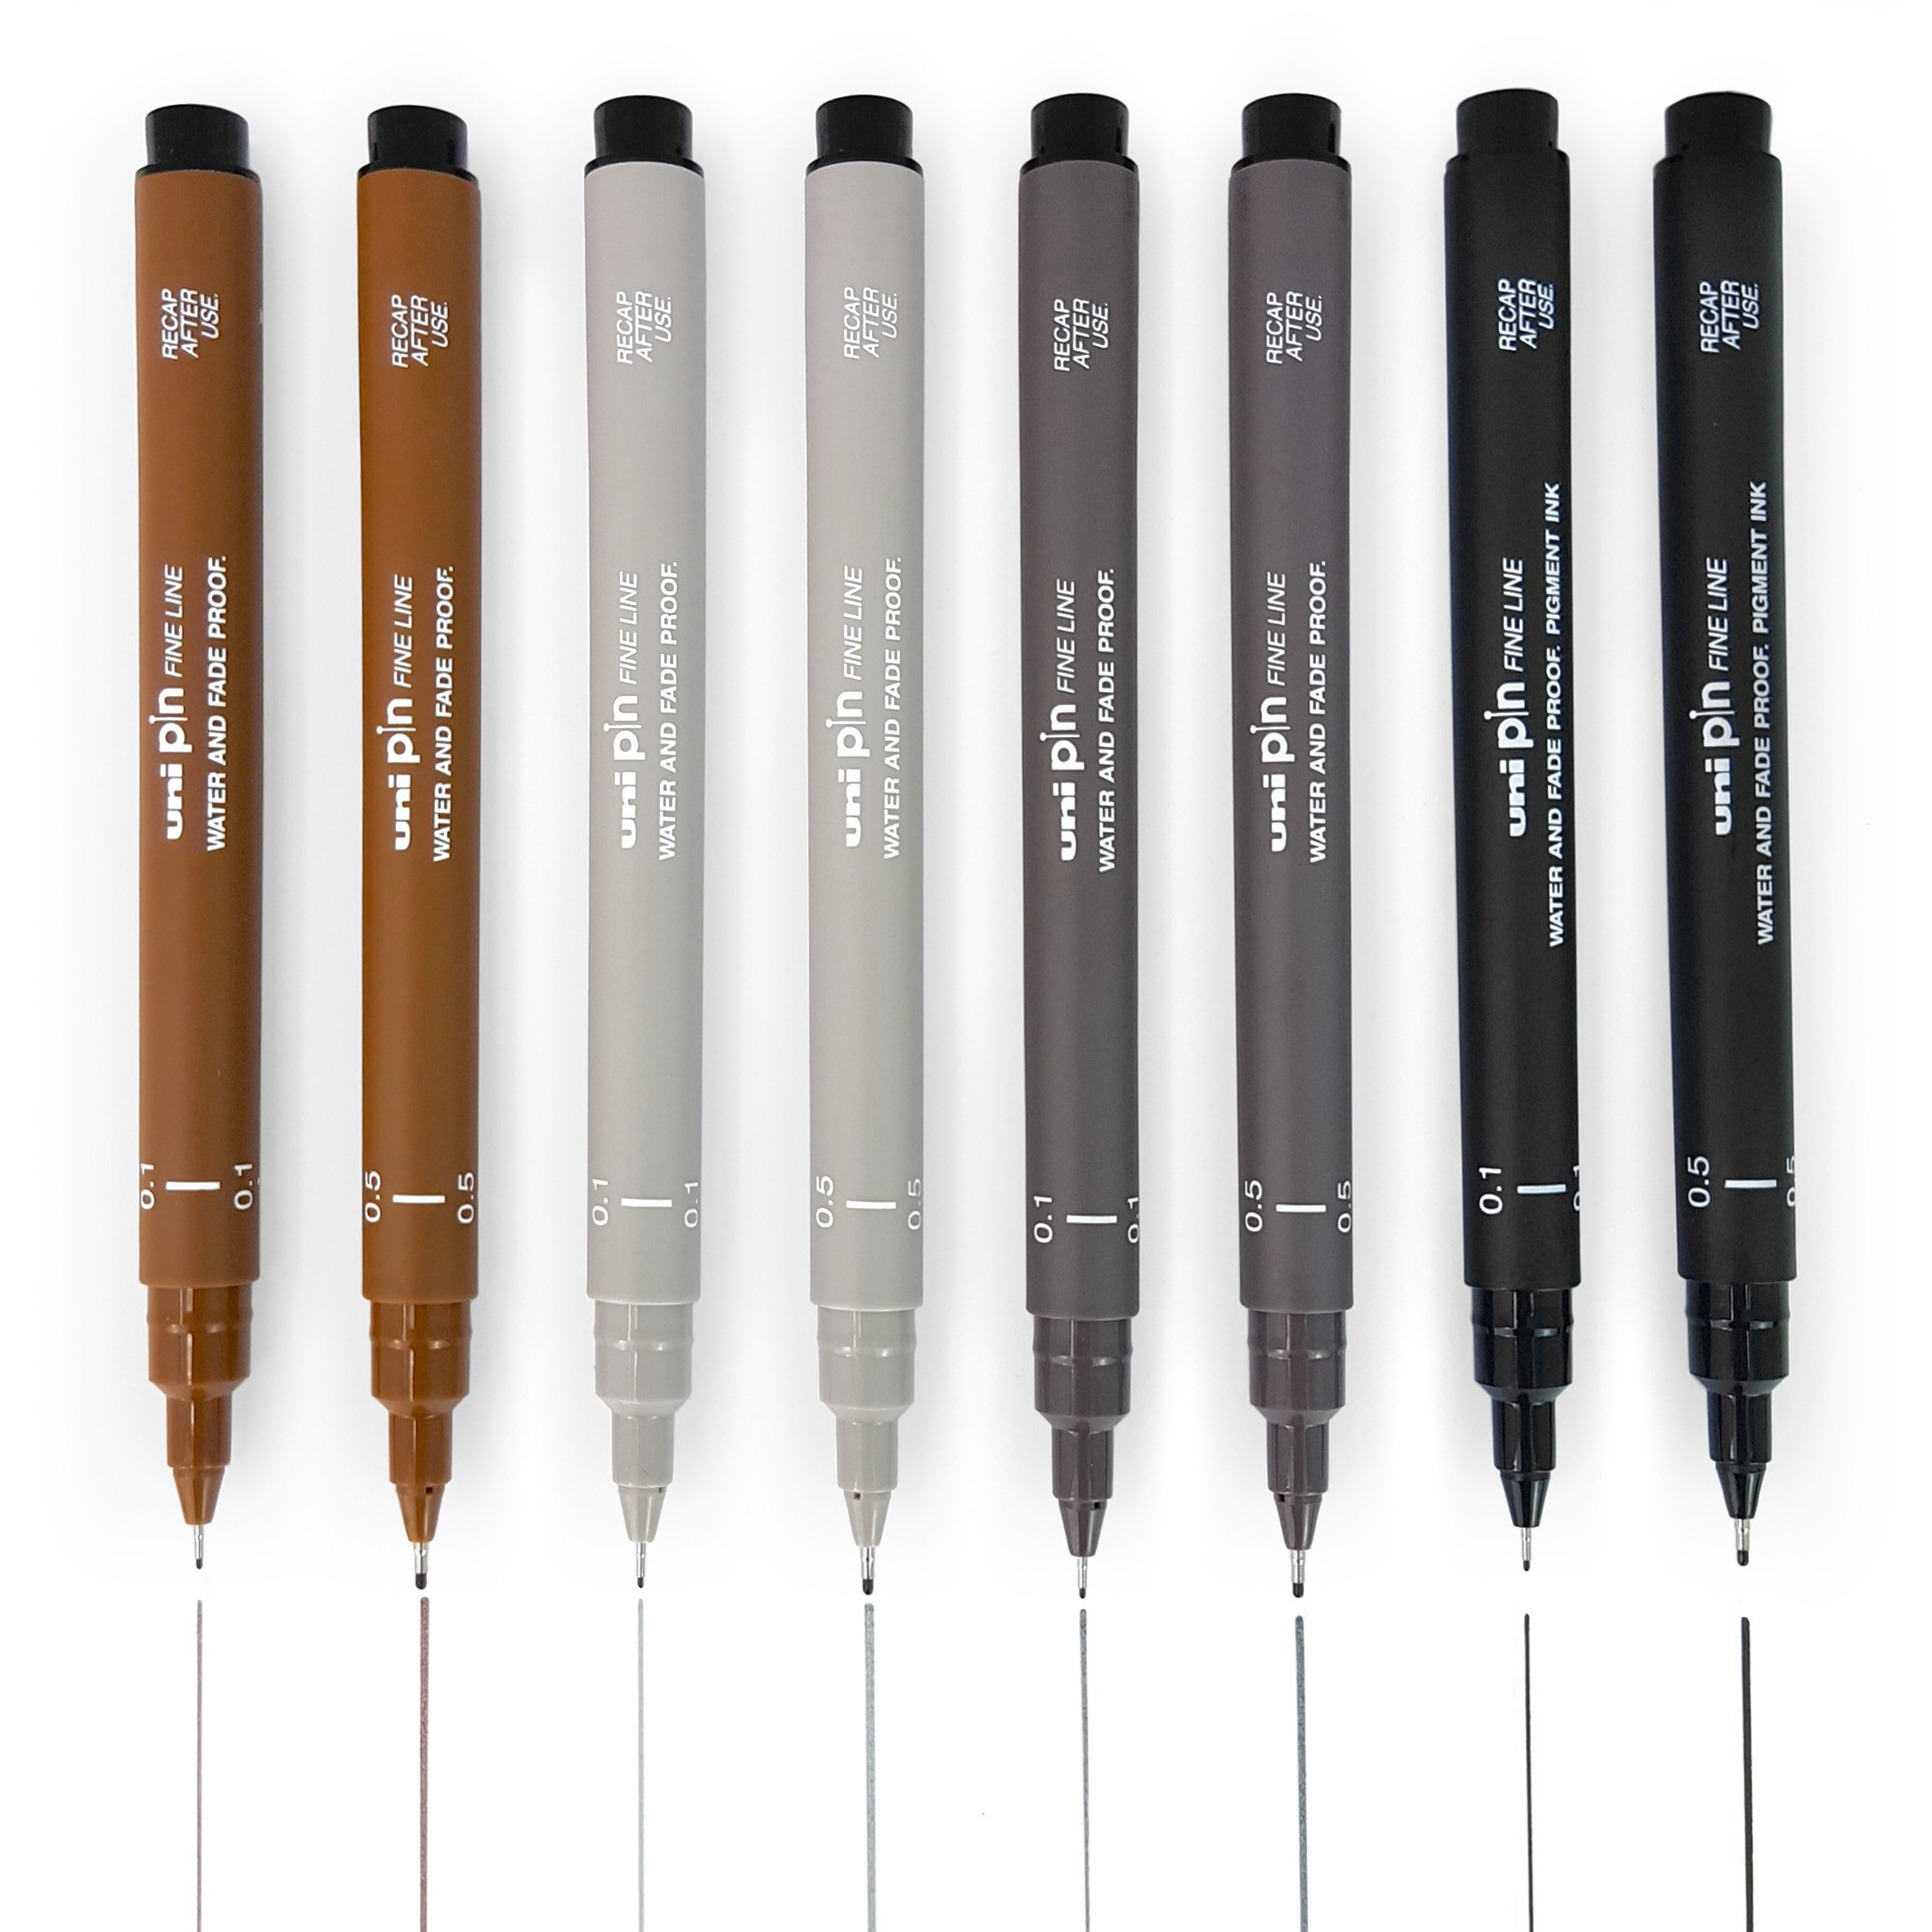 Uni Pin Fineliner Drawing Pen - Sketching Set of 8-0.1mm/0.5mm - Black, Dark Grey, Light Grey, and Sepia